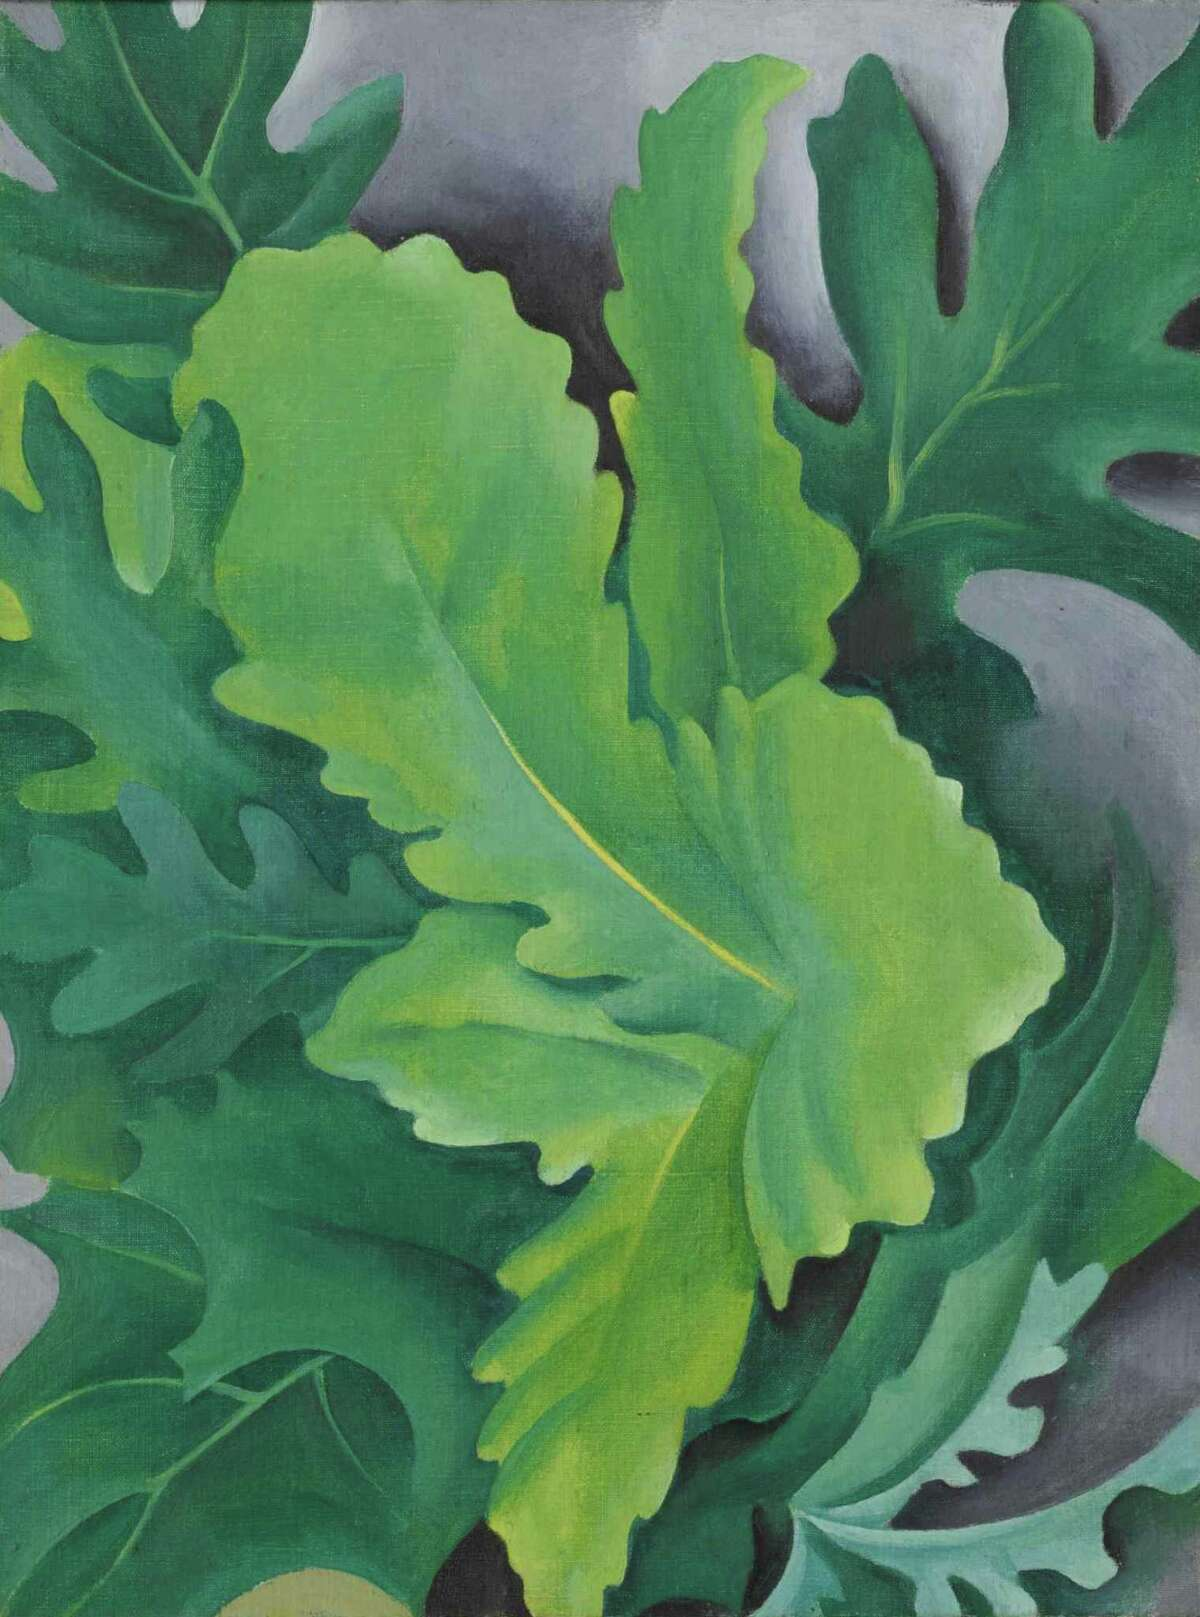 """Georgia O'Keeffe's """"Green Oak Leaves,"""" 1923, was sold at Sotheby's for just over $1.1 million on May 19. The Newark Museum of Art, the seller, said it would use the funds to support museum collections."""